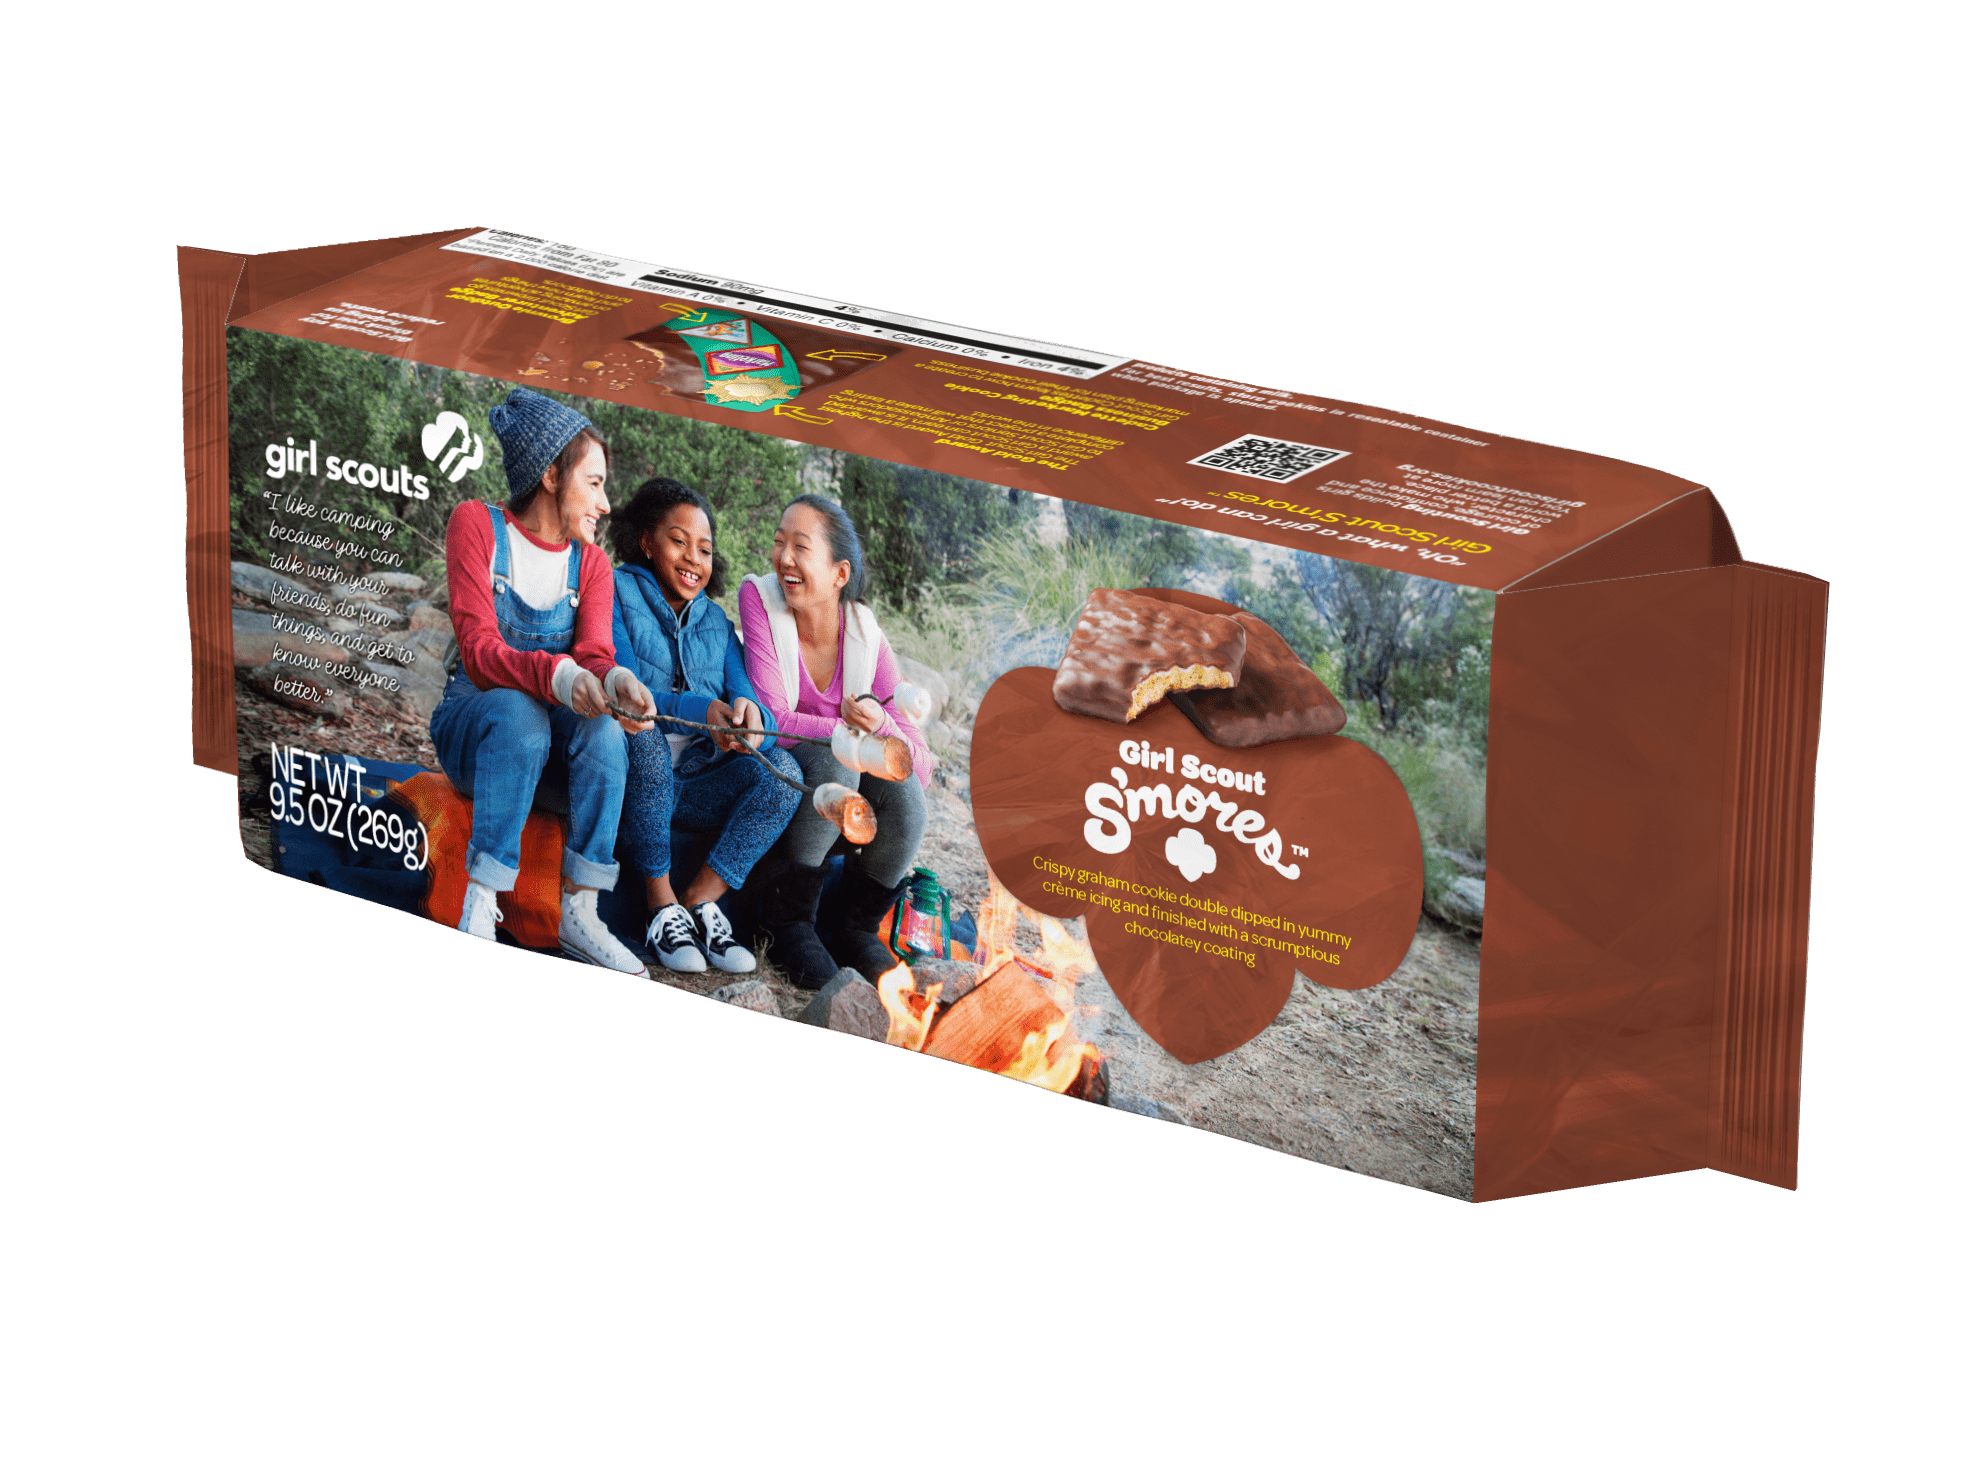 s mores girl scout cookies popsugar food